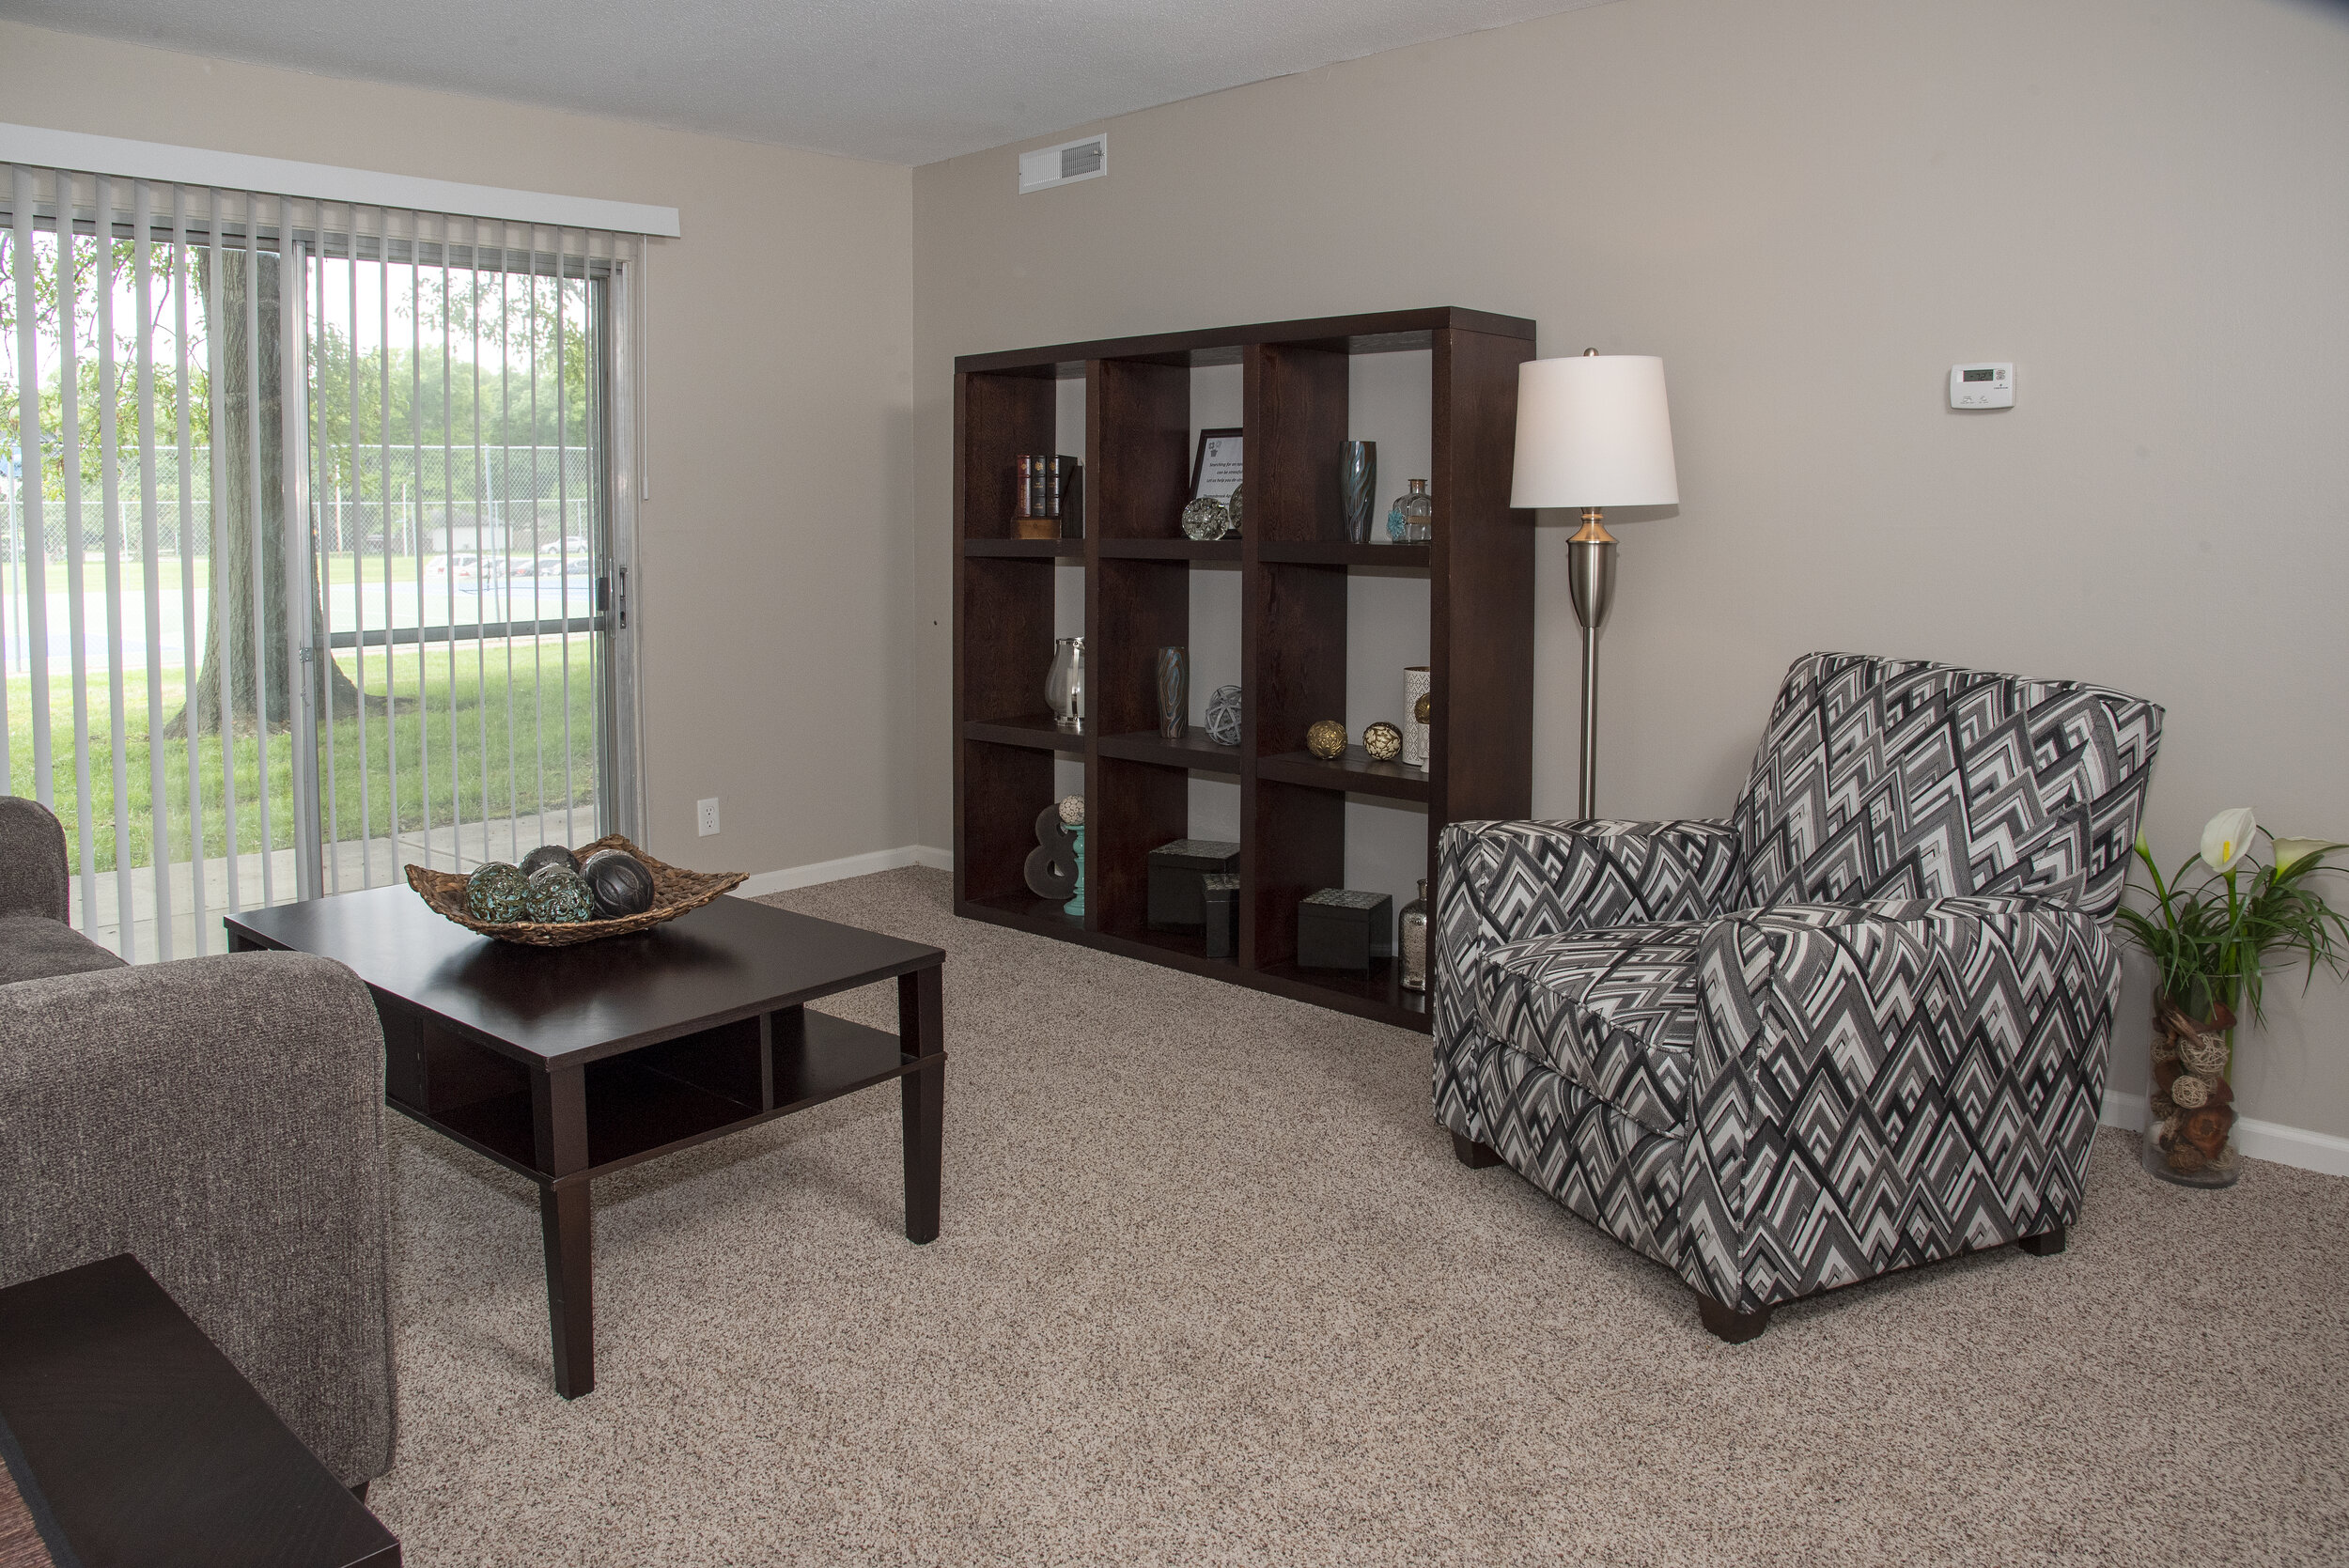 03 Living Rooms Feature Walk-Out Balcony or Patio.jpg